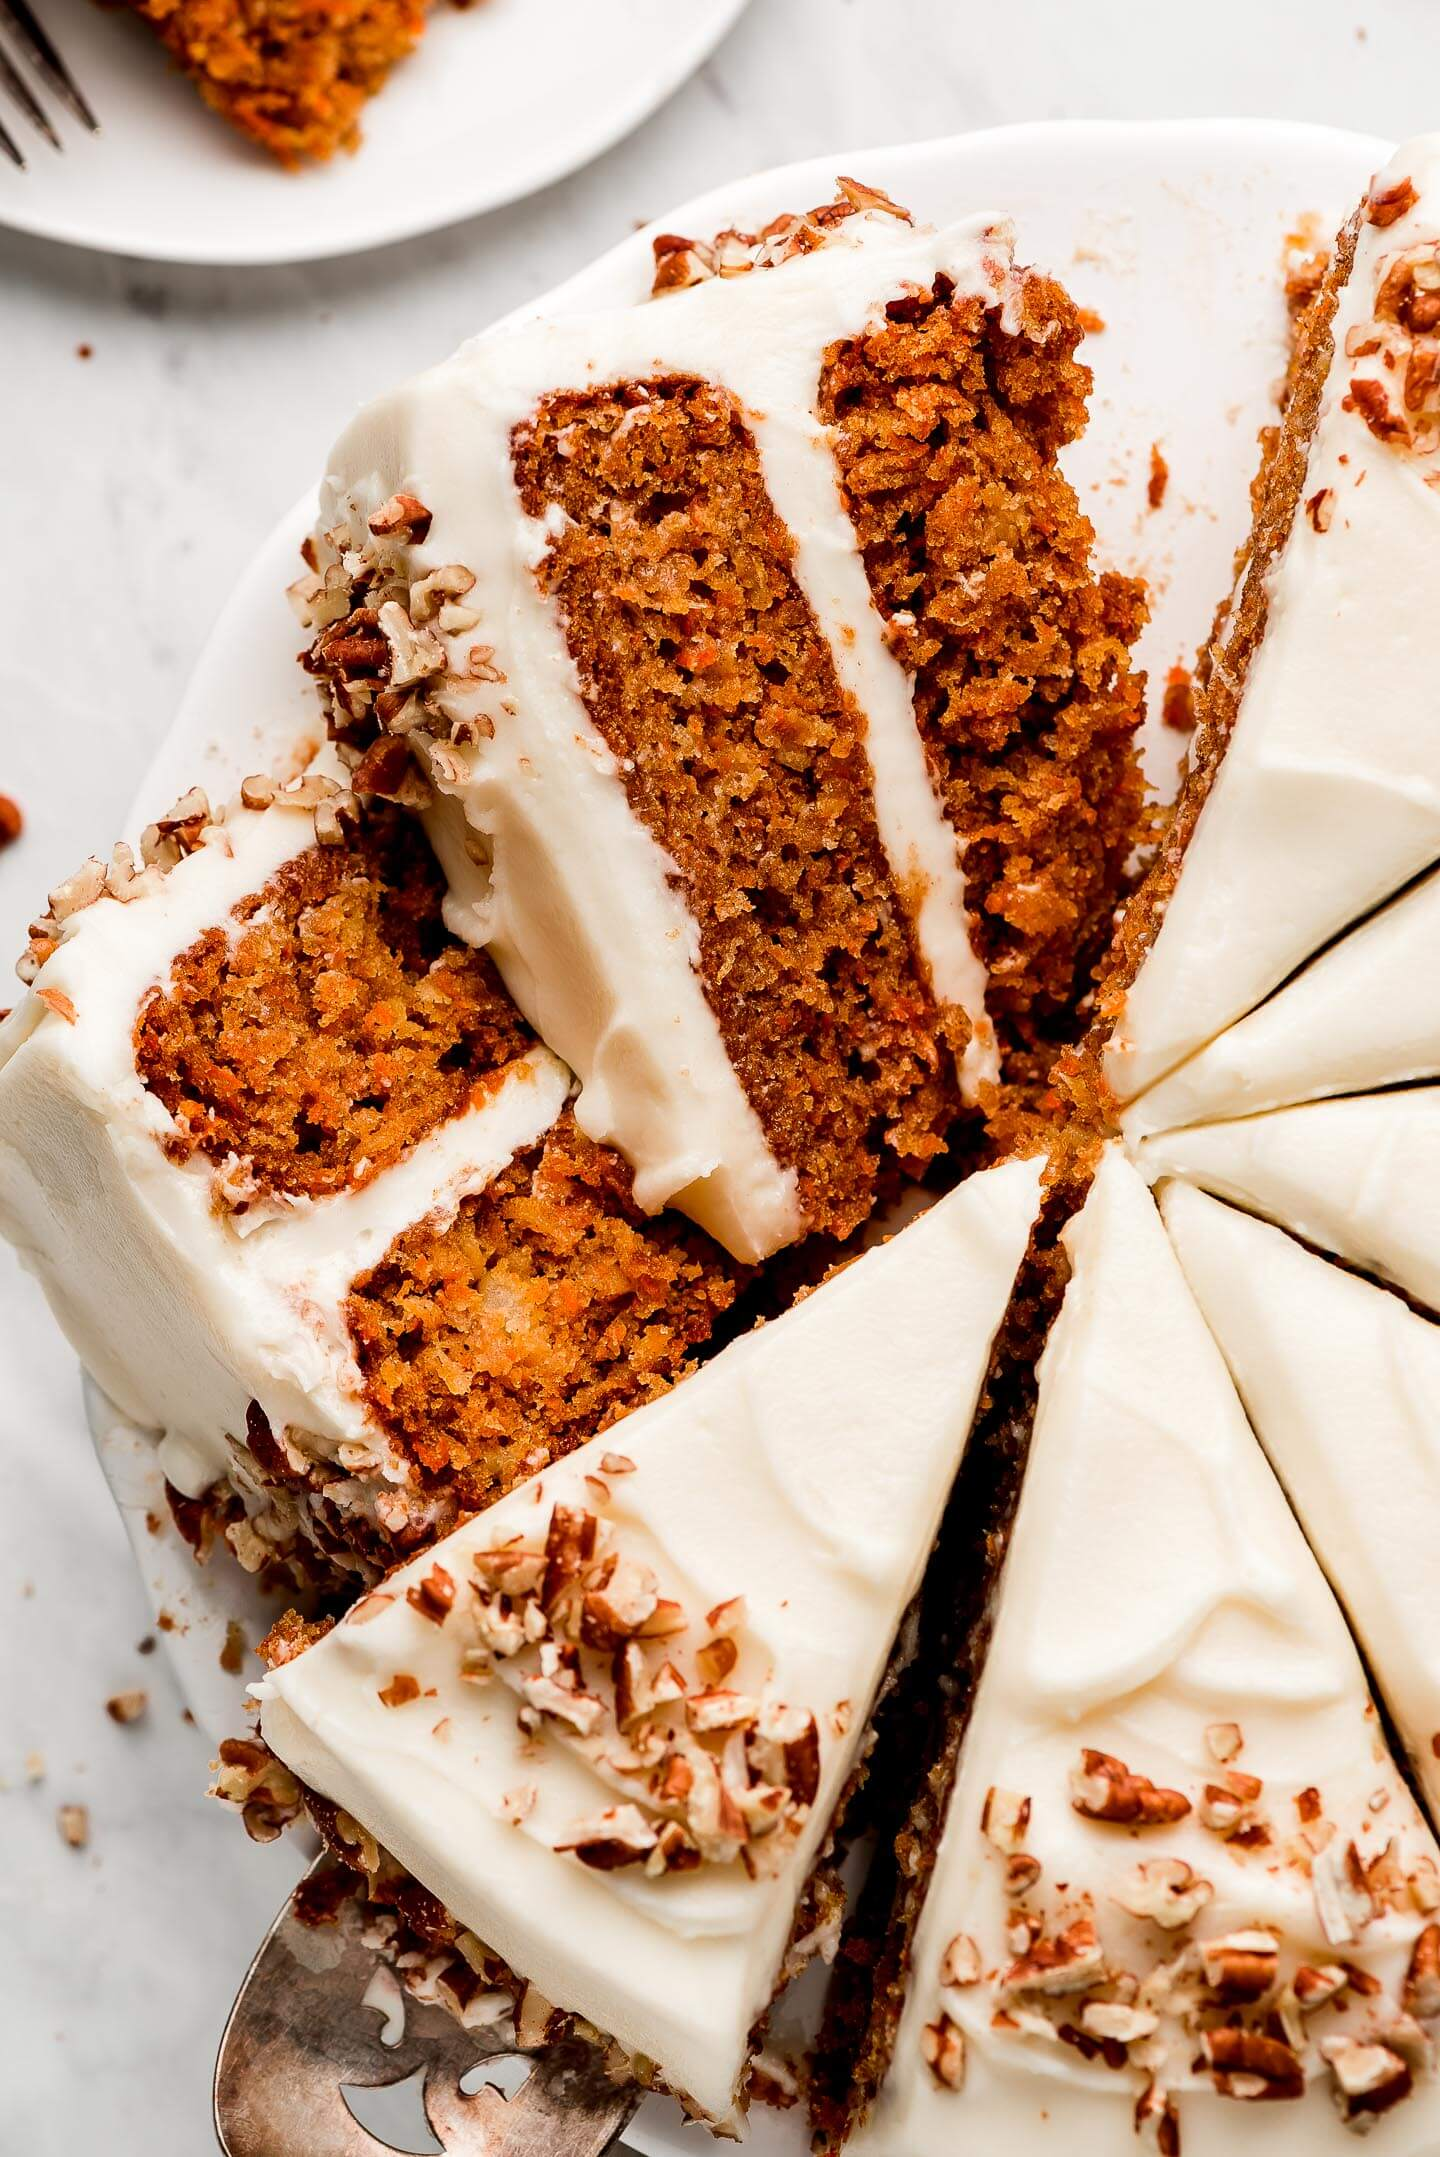 Slices of Moist Easy Carrot Cake on their side showing the layers and moist crumb.